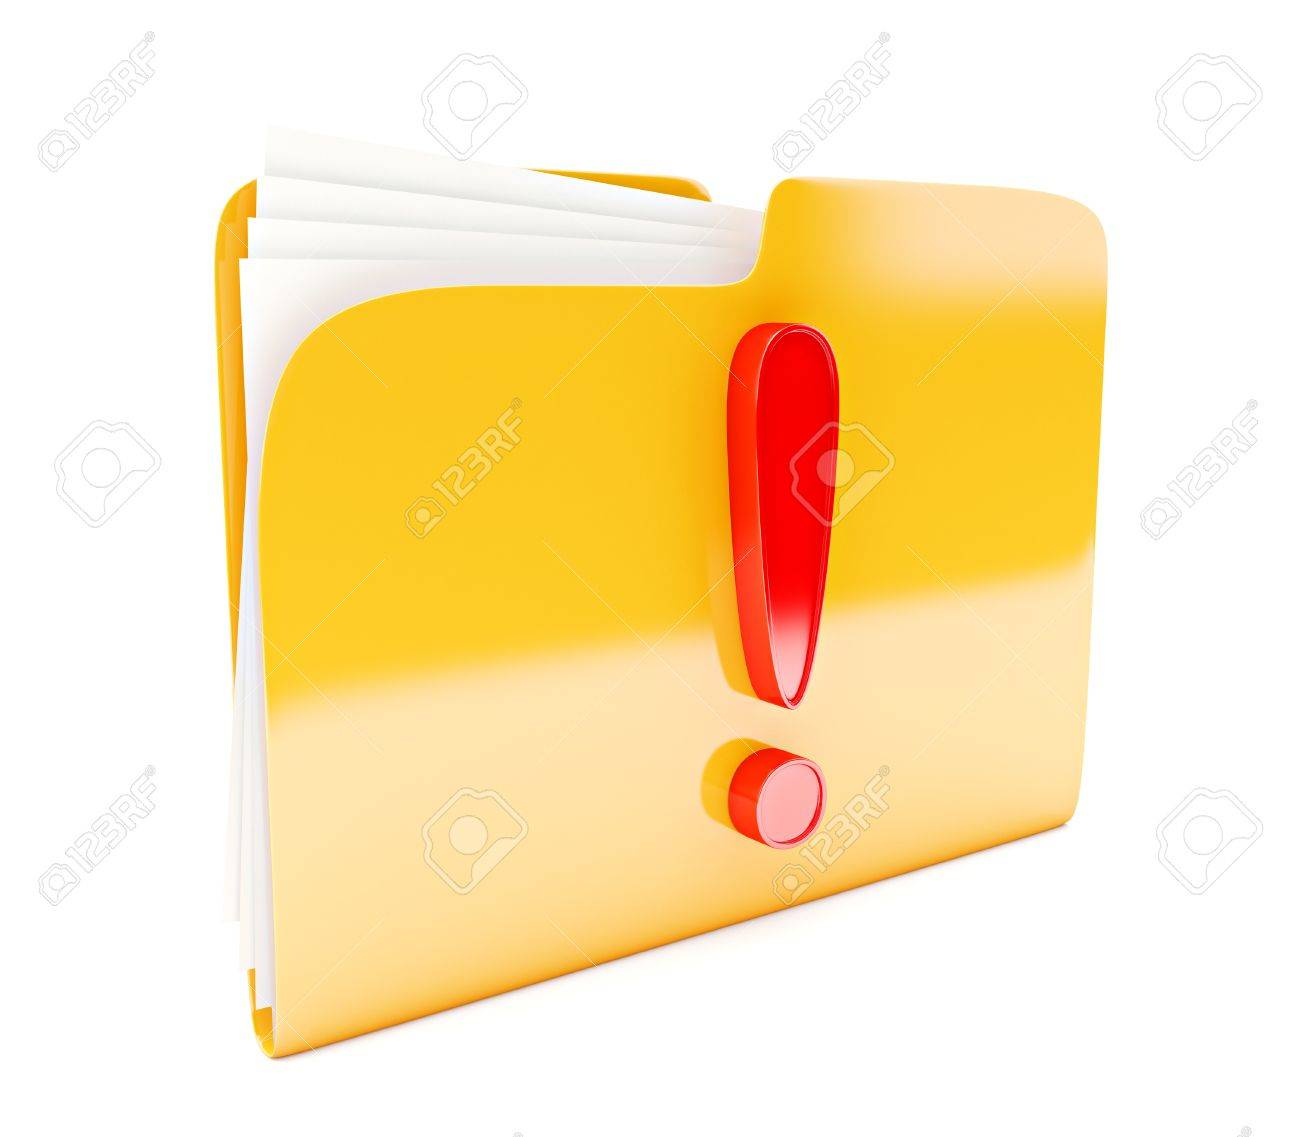 yellow folder 3d icon with red exclamation mark isolated on white Stock Photo - 14523714